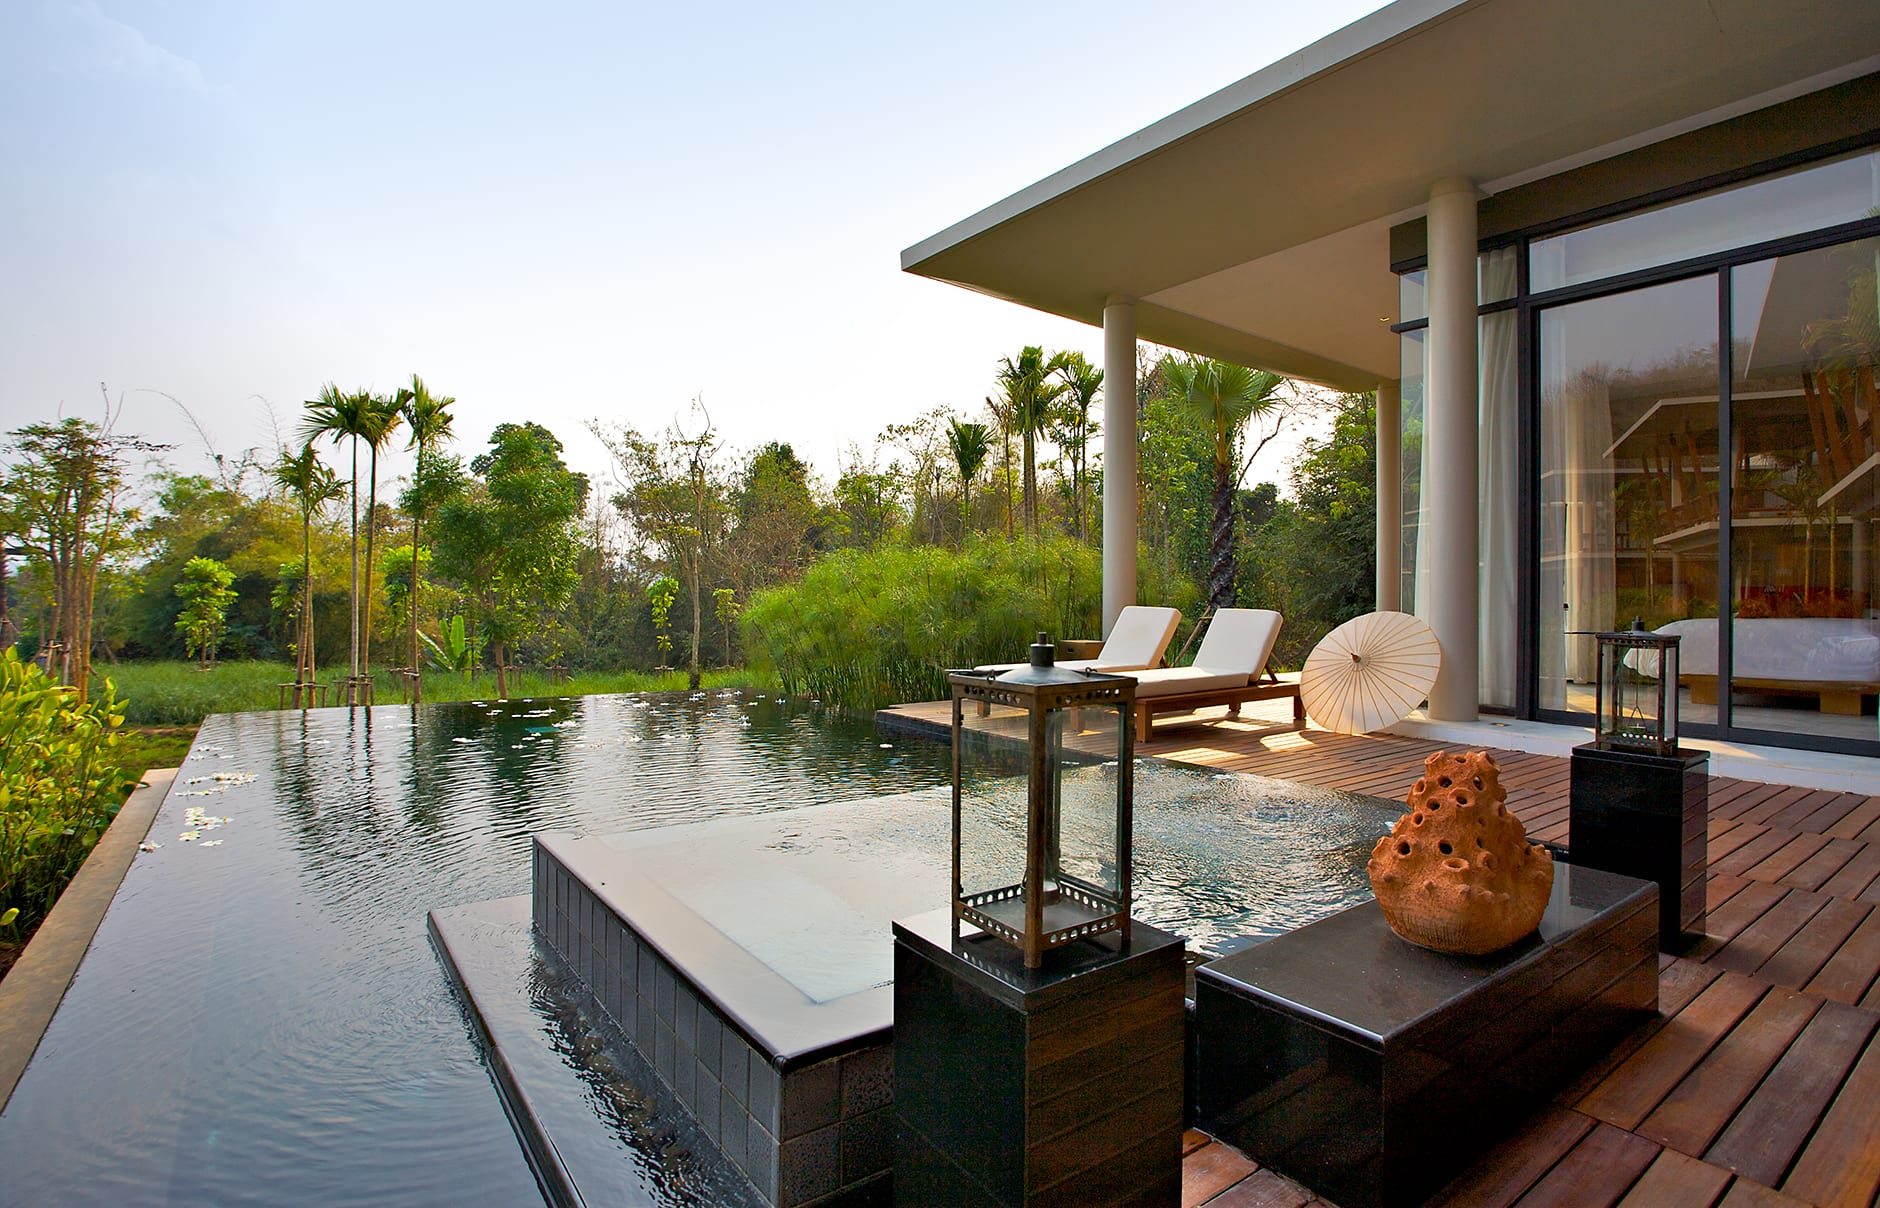 Pool Villa. Veranda Chiang Mai - The High Resort. Thailand. © Veranda Chiang Mai - The High Resort